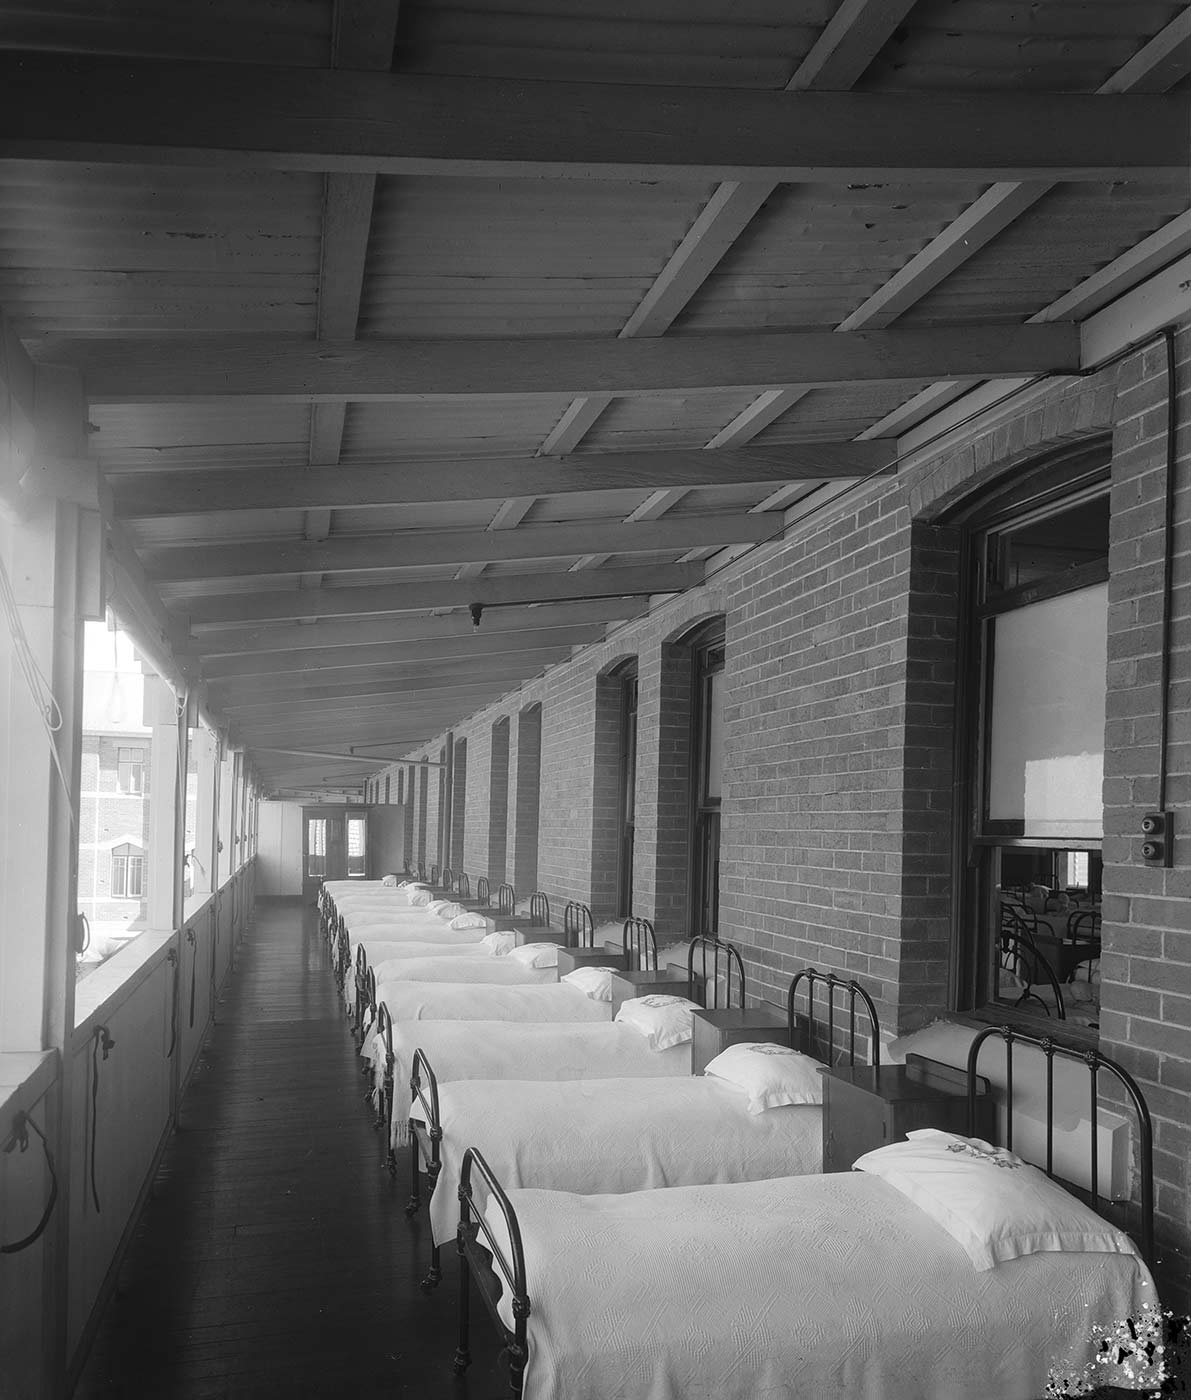 Black and white photo showing a row of single metal beds lined up against a brick wall. A timber wall with open windows is opposite and roof is made of corrugated iron. The beds have white bedspreads and pillow cases, with dressers in between each. - click to view larger image